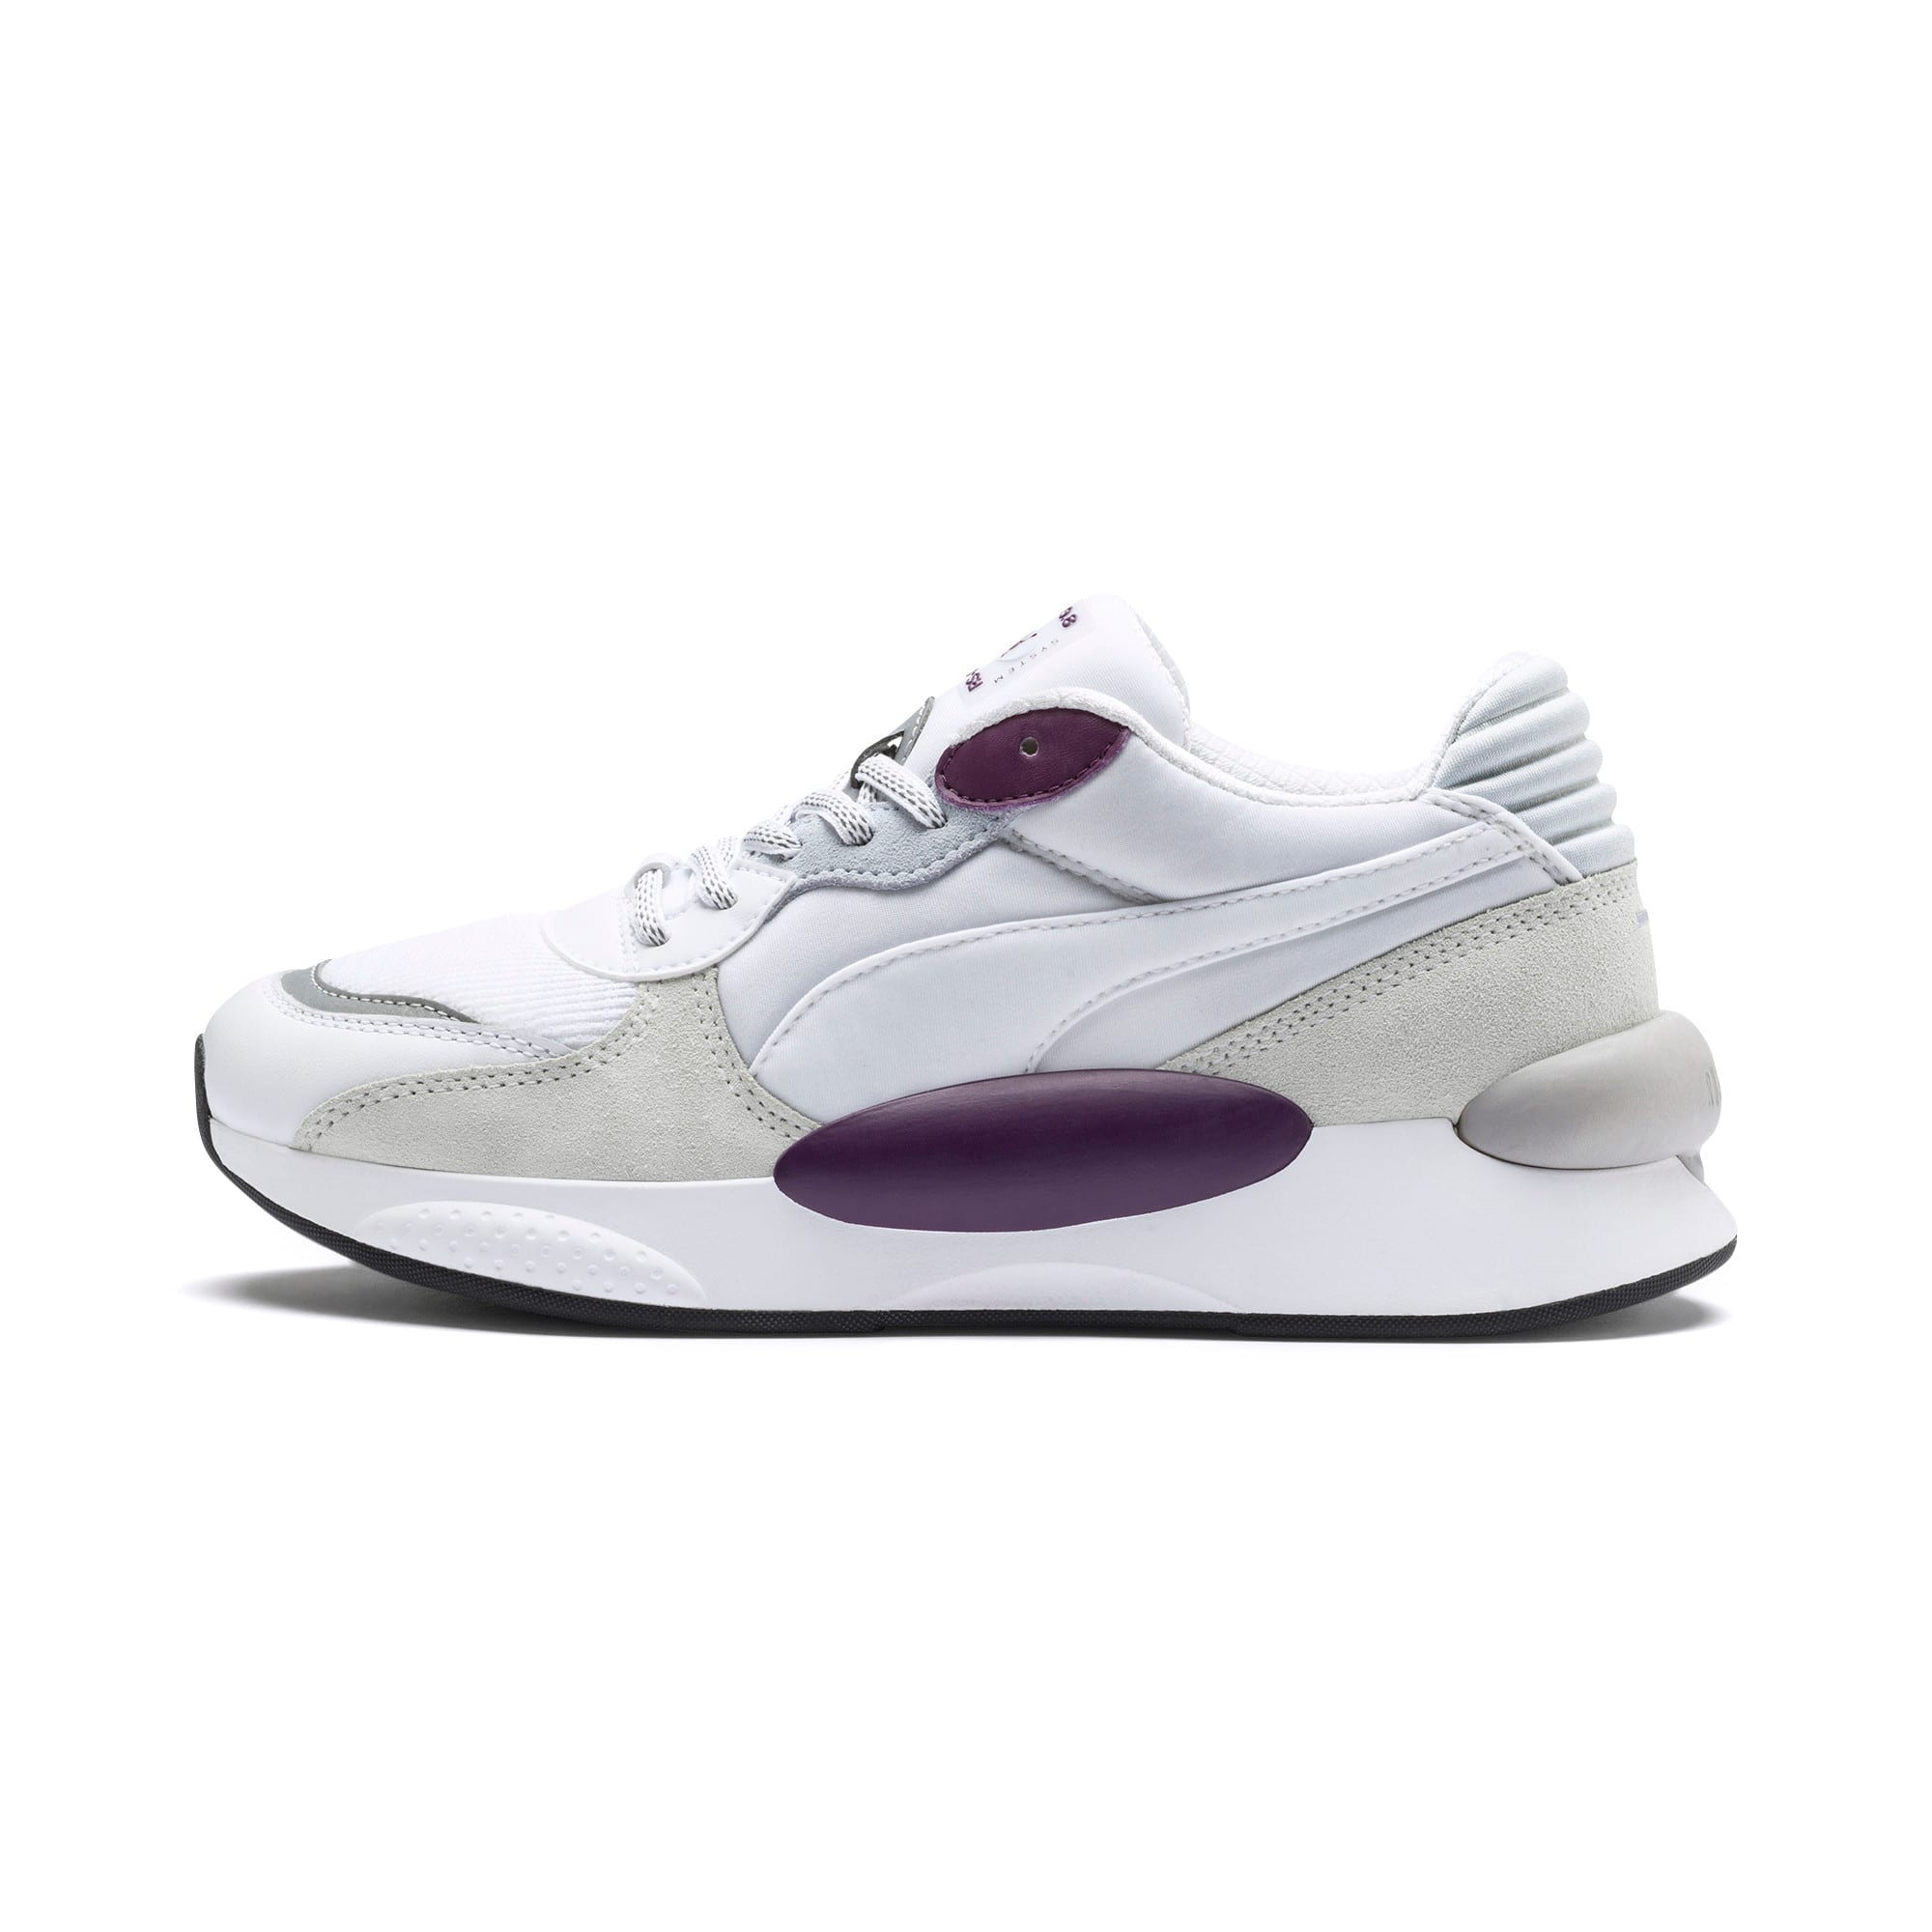 Thumbnail 1 of RS 9.8 Gravity Sneaker, Puma White-Plum Purple, medium